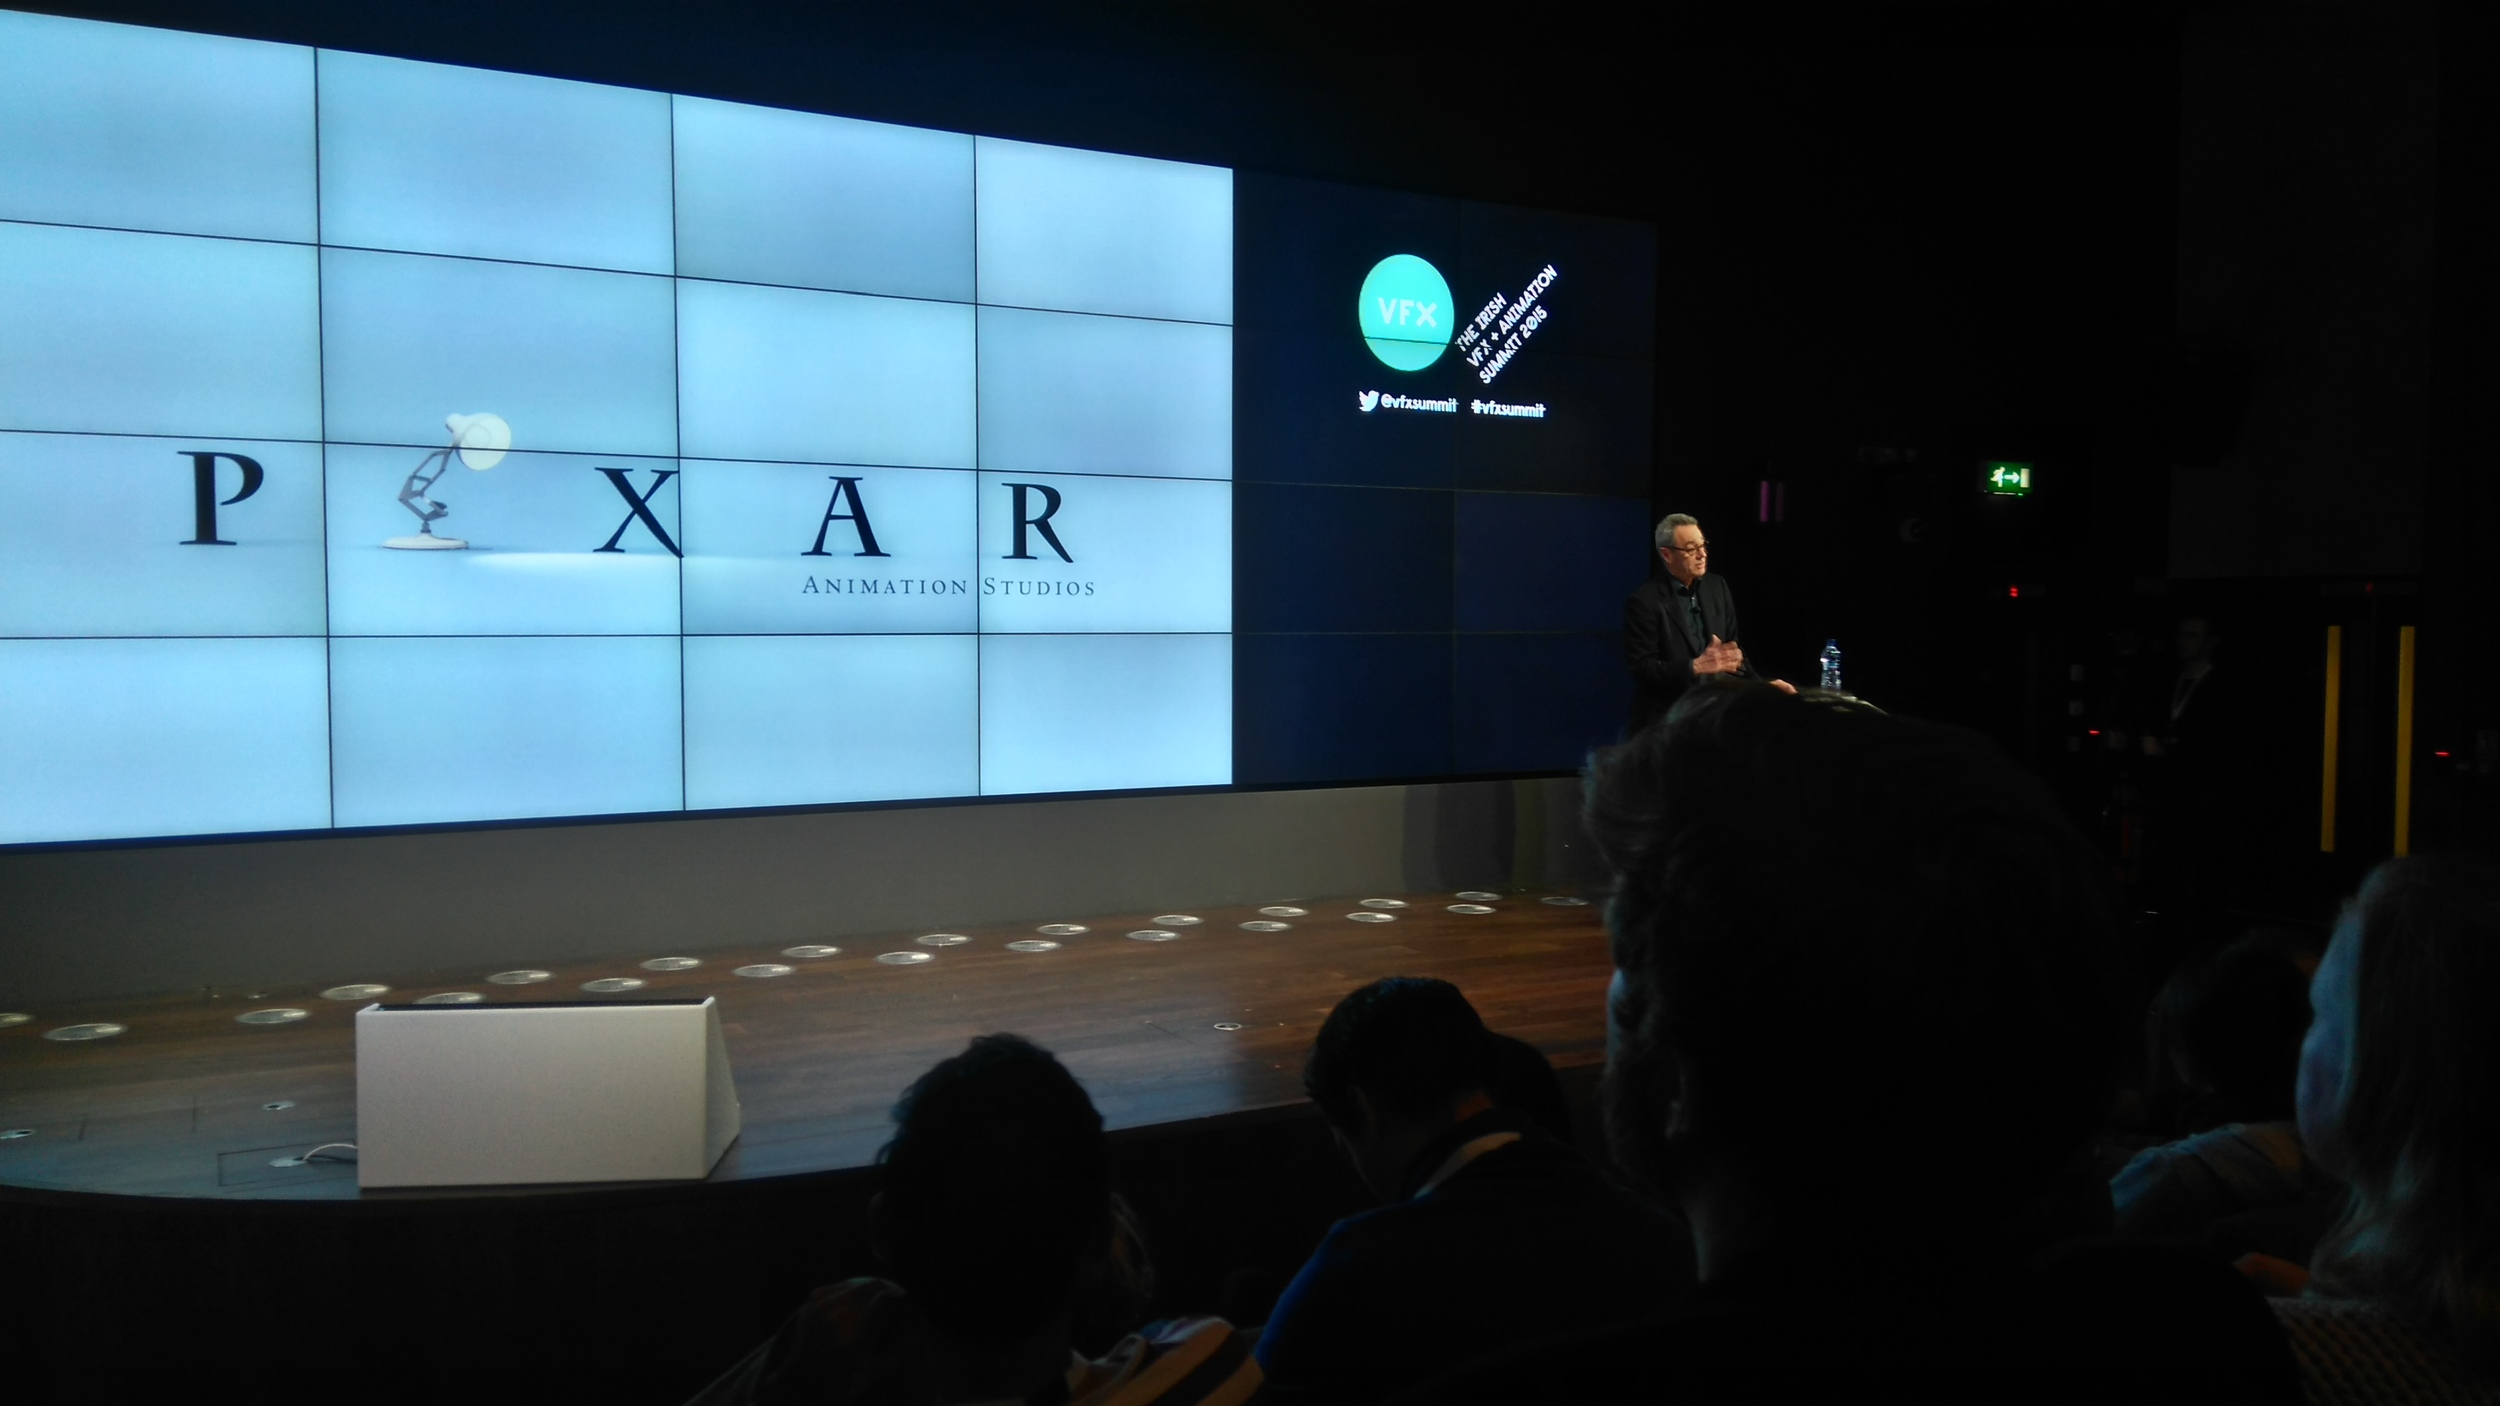 Jim Morris, the president of Pixar, discussing the technological advances that Pixar has made.